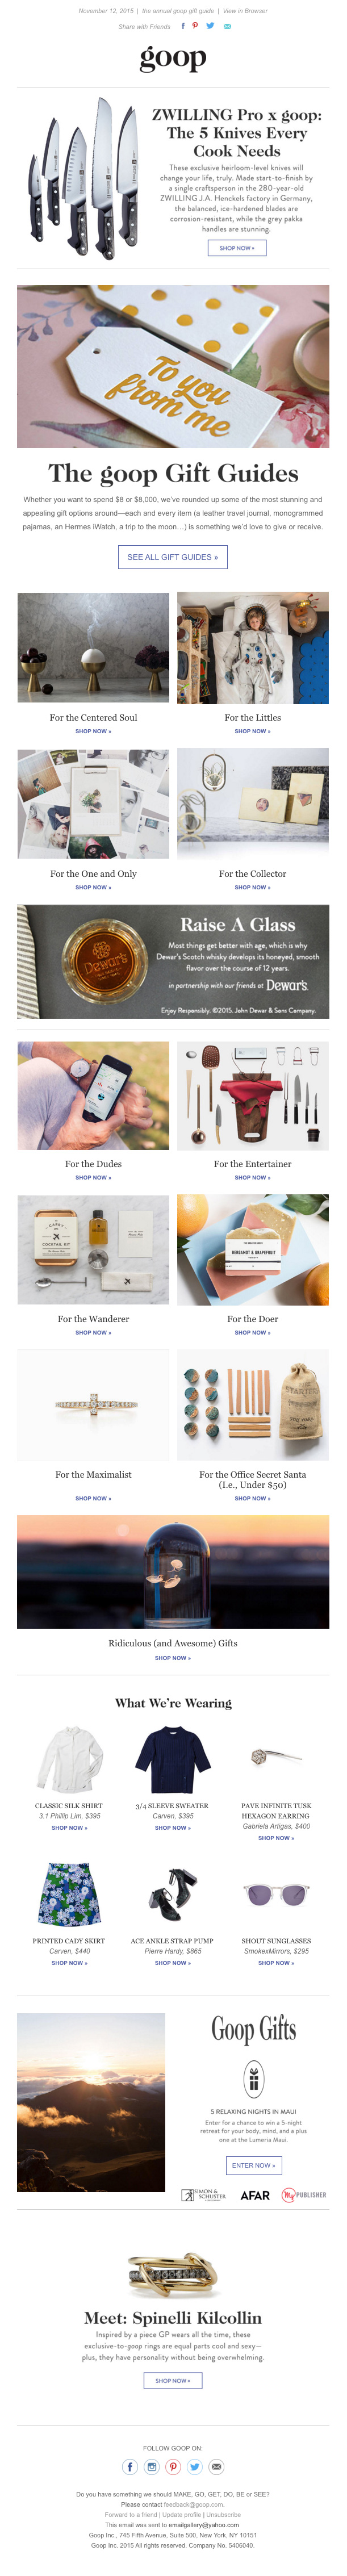 goop-newsletter